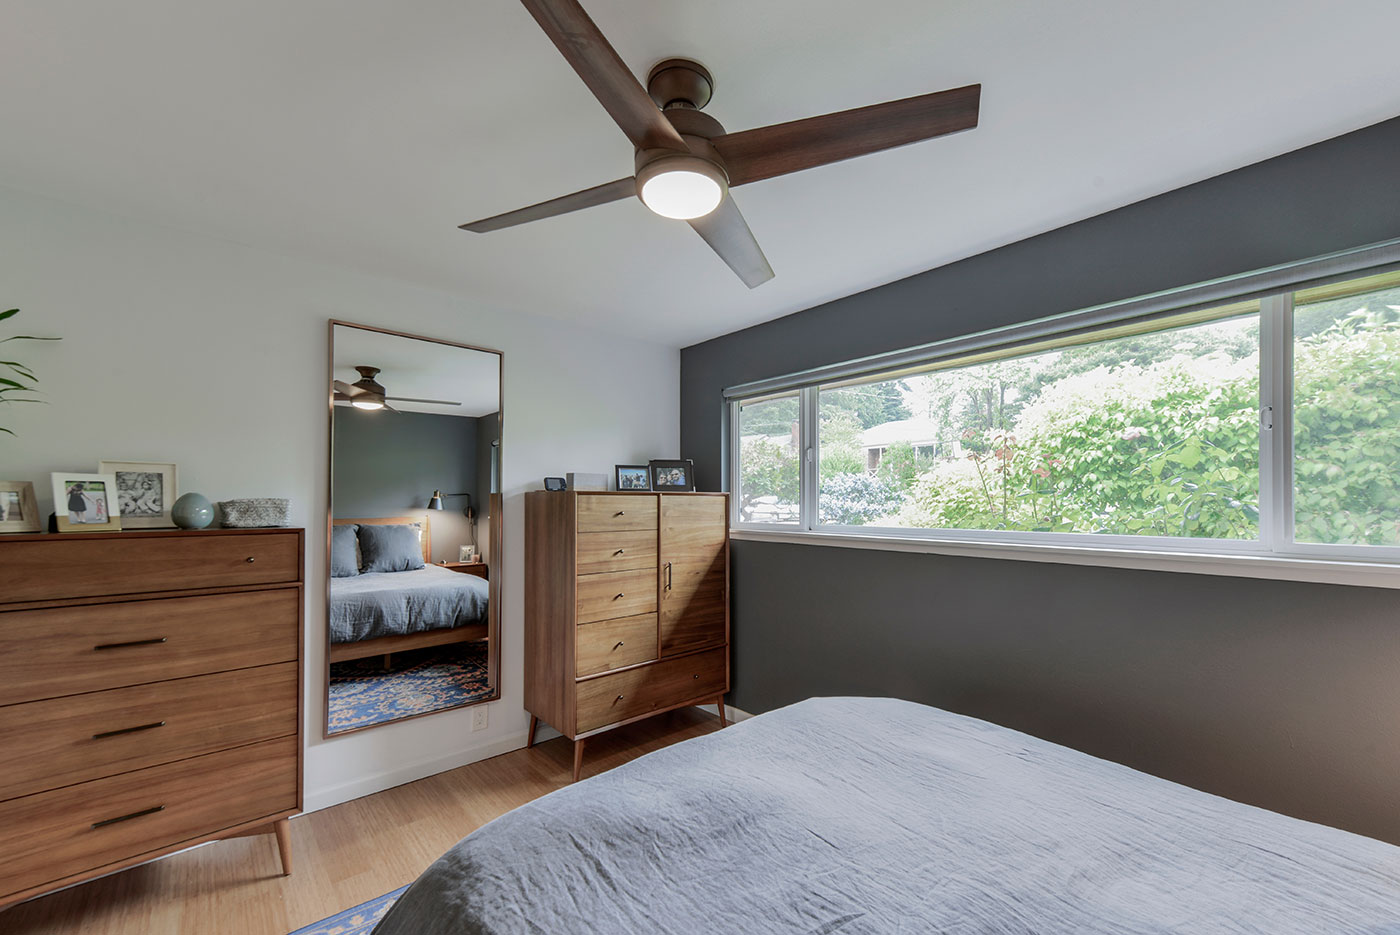 Ceiling Fan Direction In Summer And Winter Save On Energy